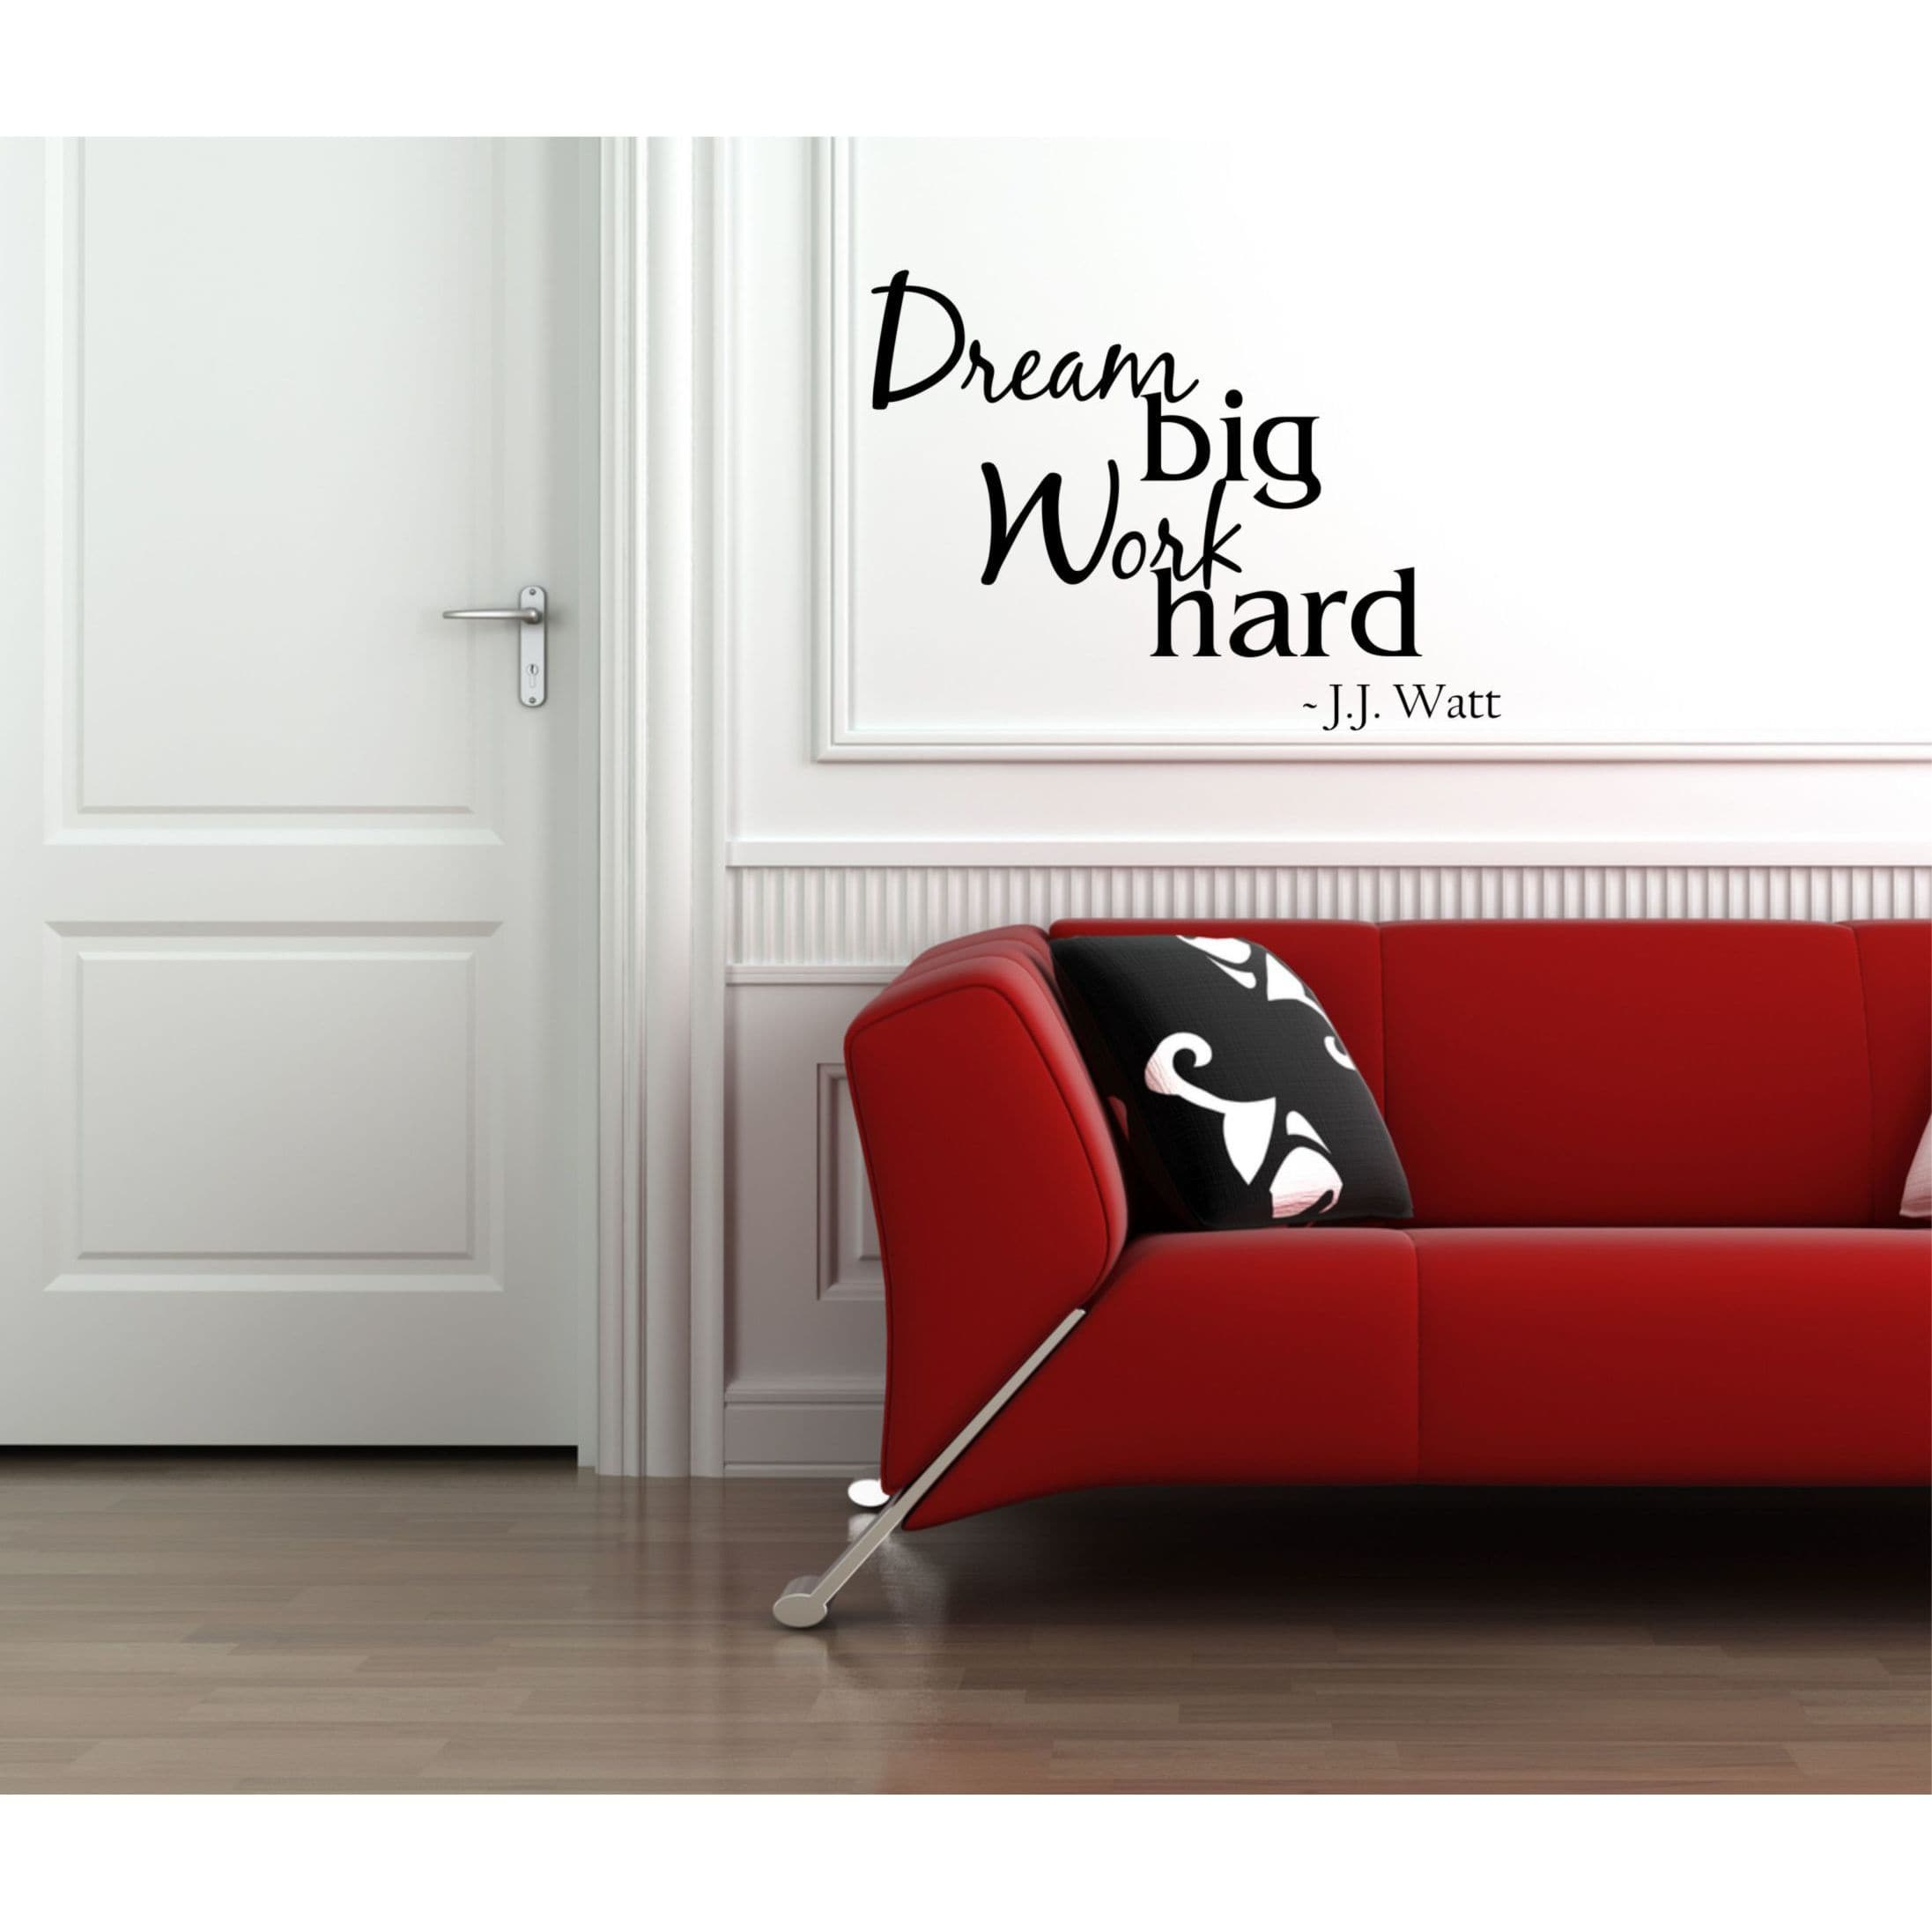 Everything Vinyl Decor Dream Big, Work Hard - J.J. Watt Vinyl Wall Art